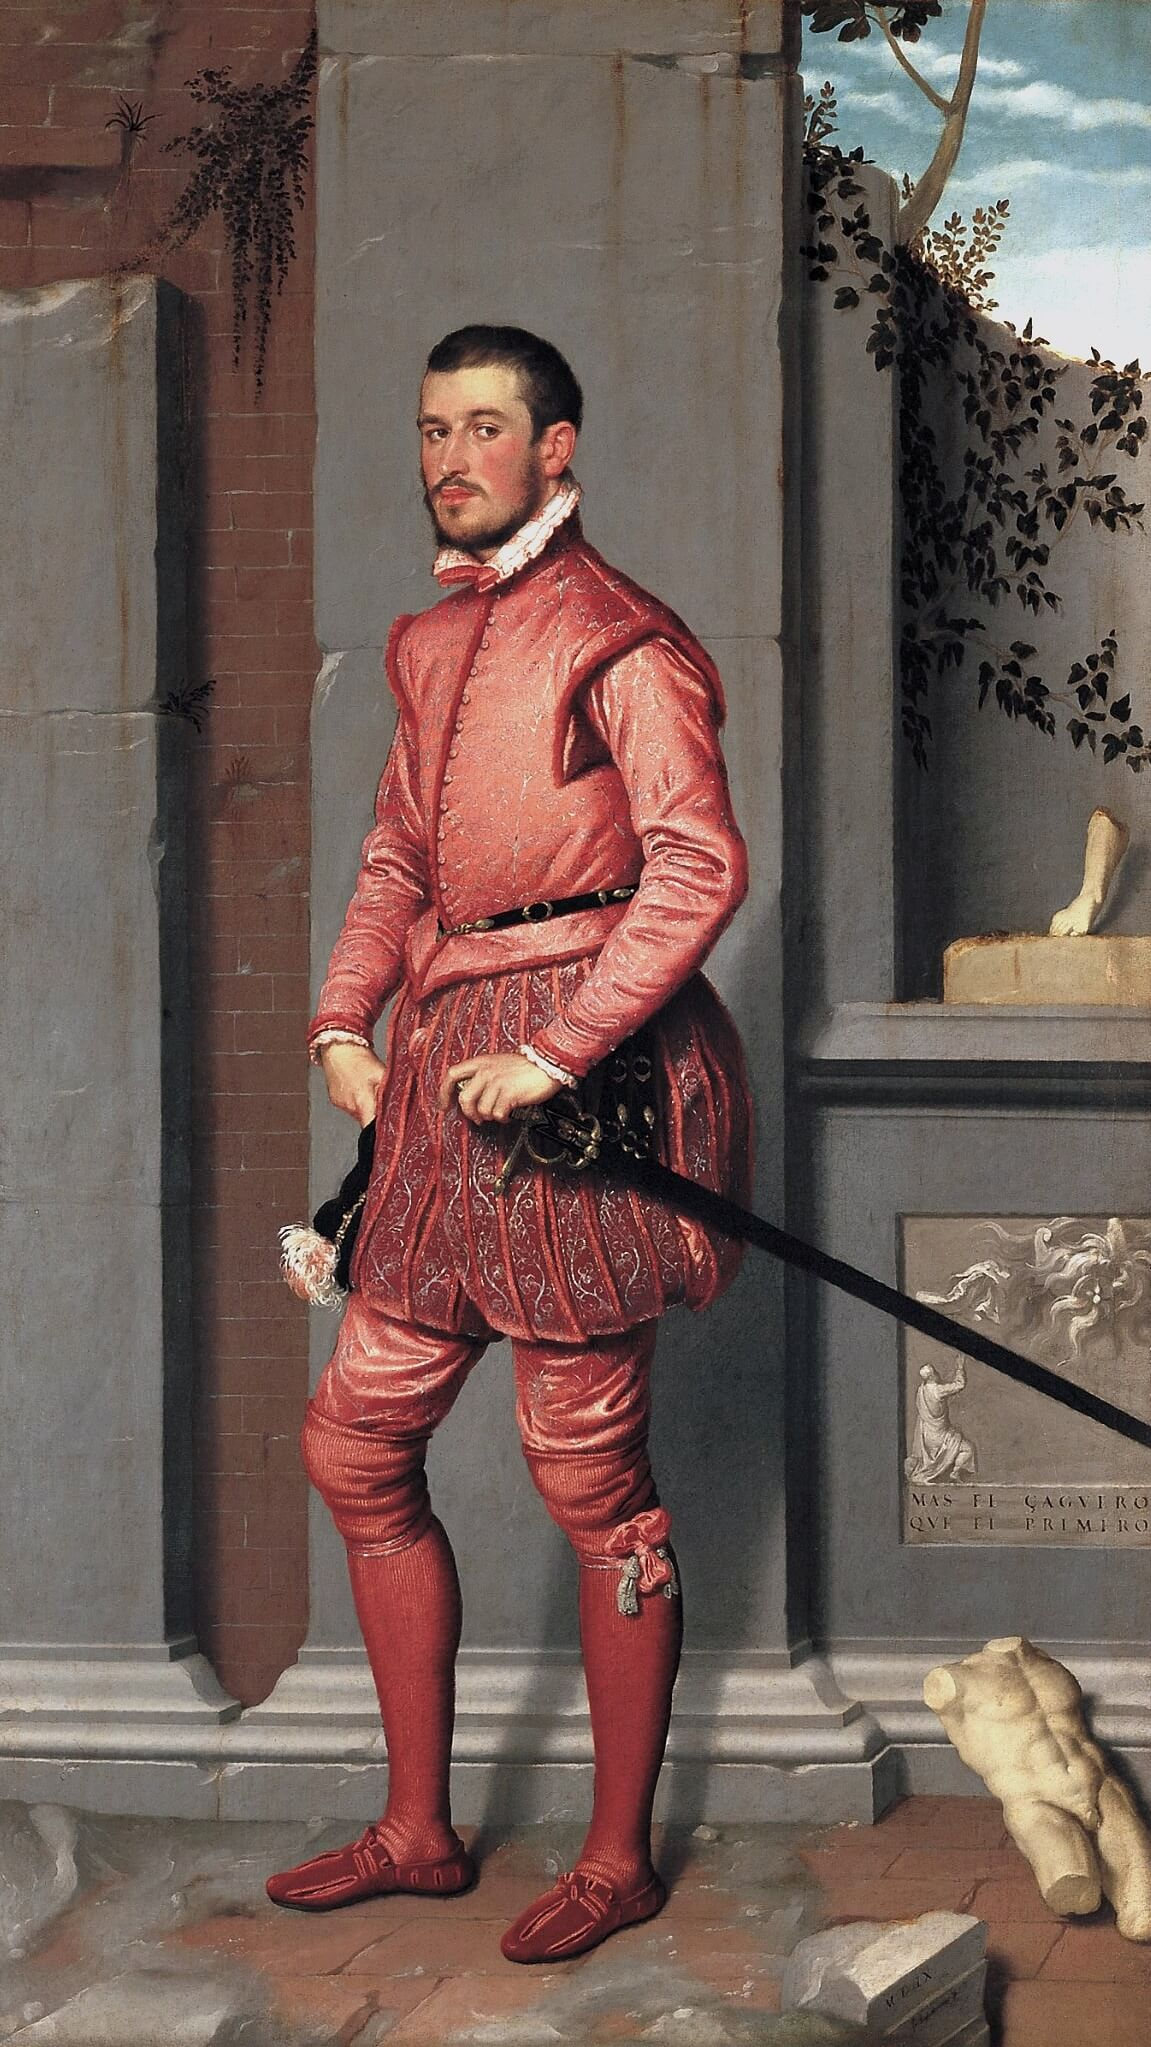 Conversation | Shahryar Nashat, Bruce Hainley and Hilary Lloyd on Giovanni Battista Moroni's Il Cavaliere in Rosa Swiss Institute